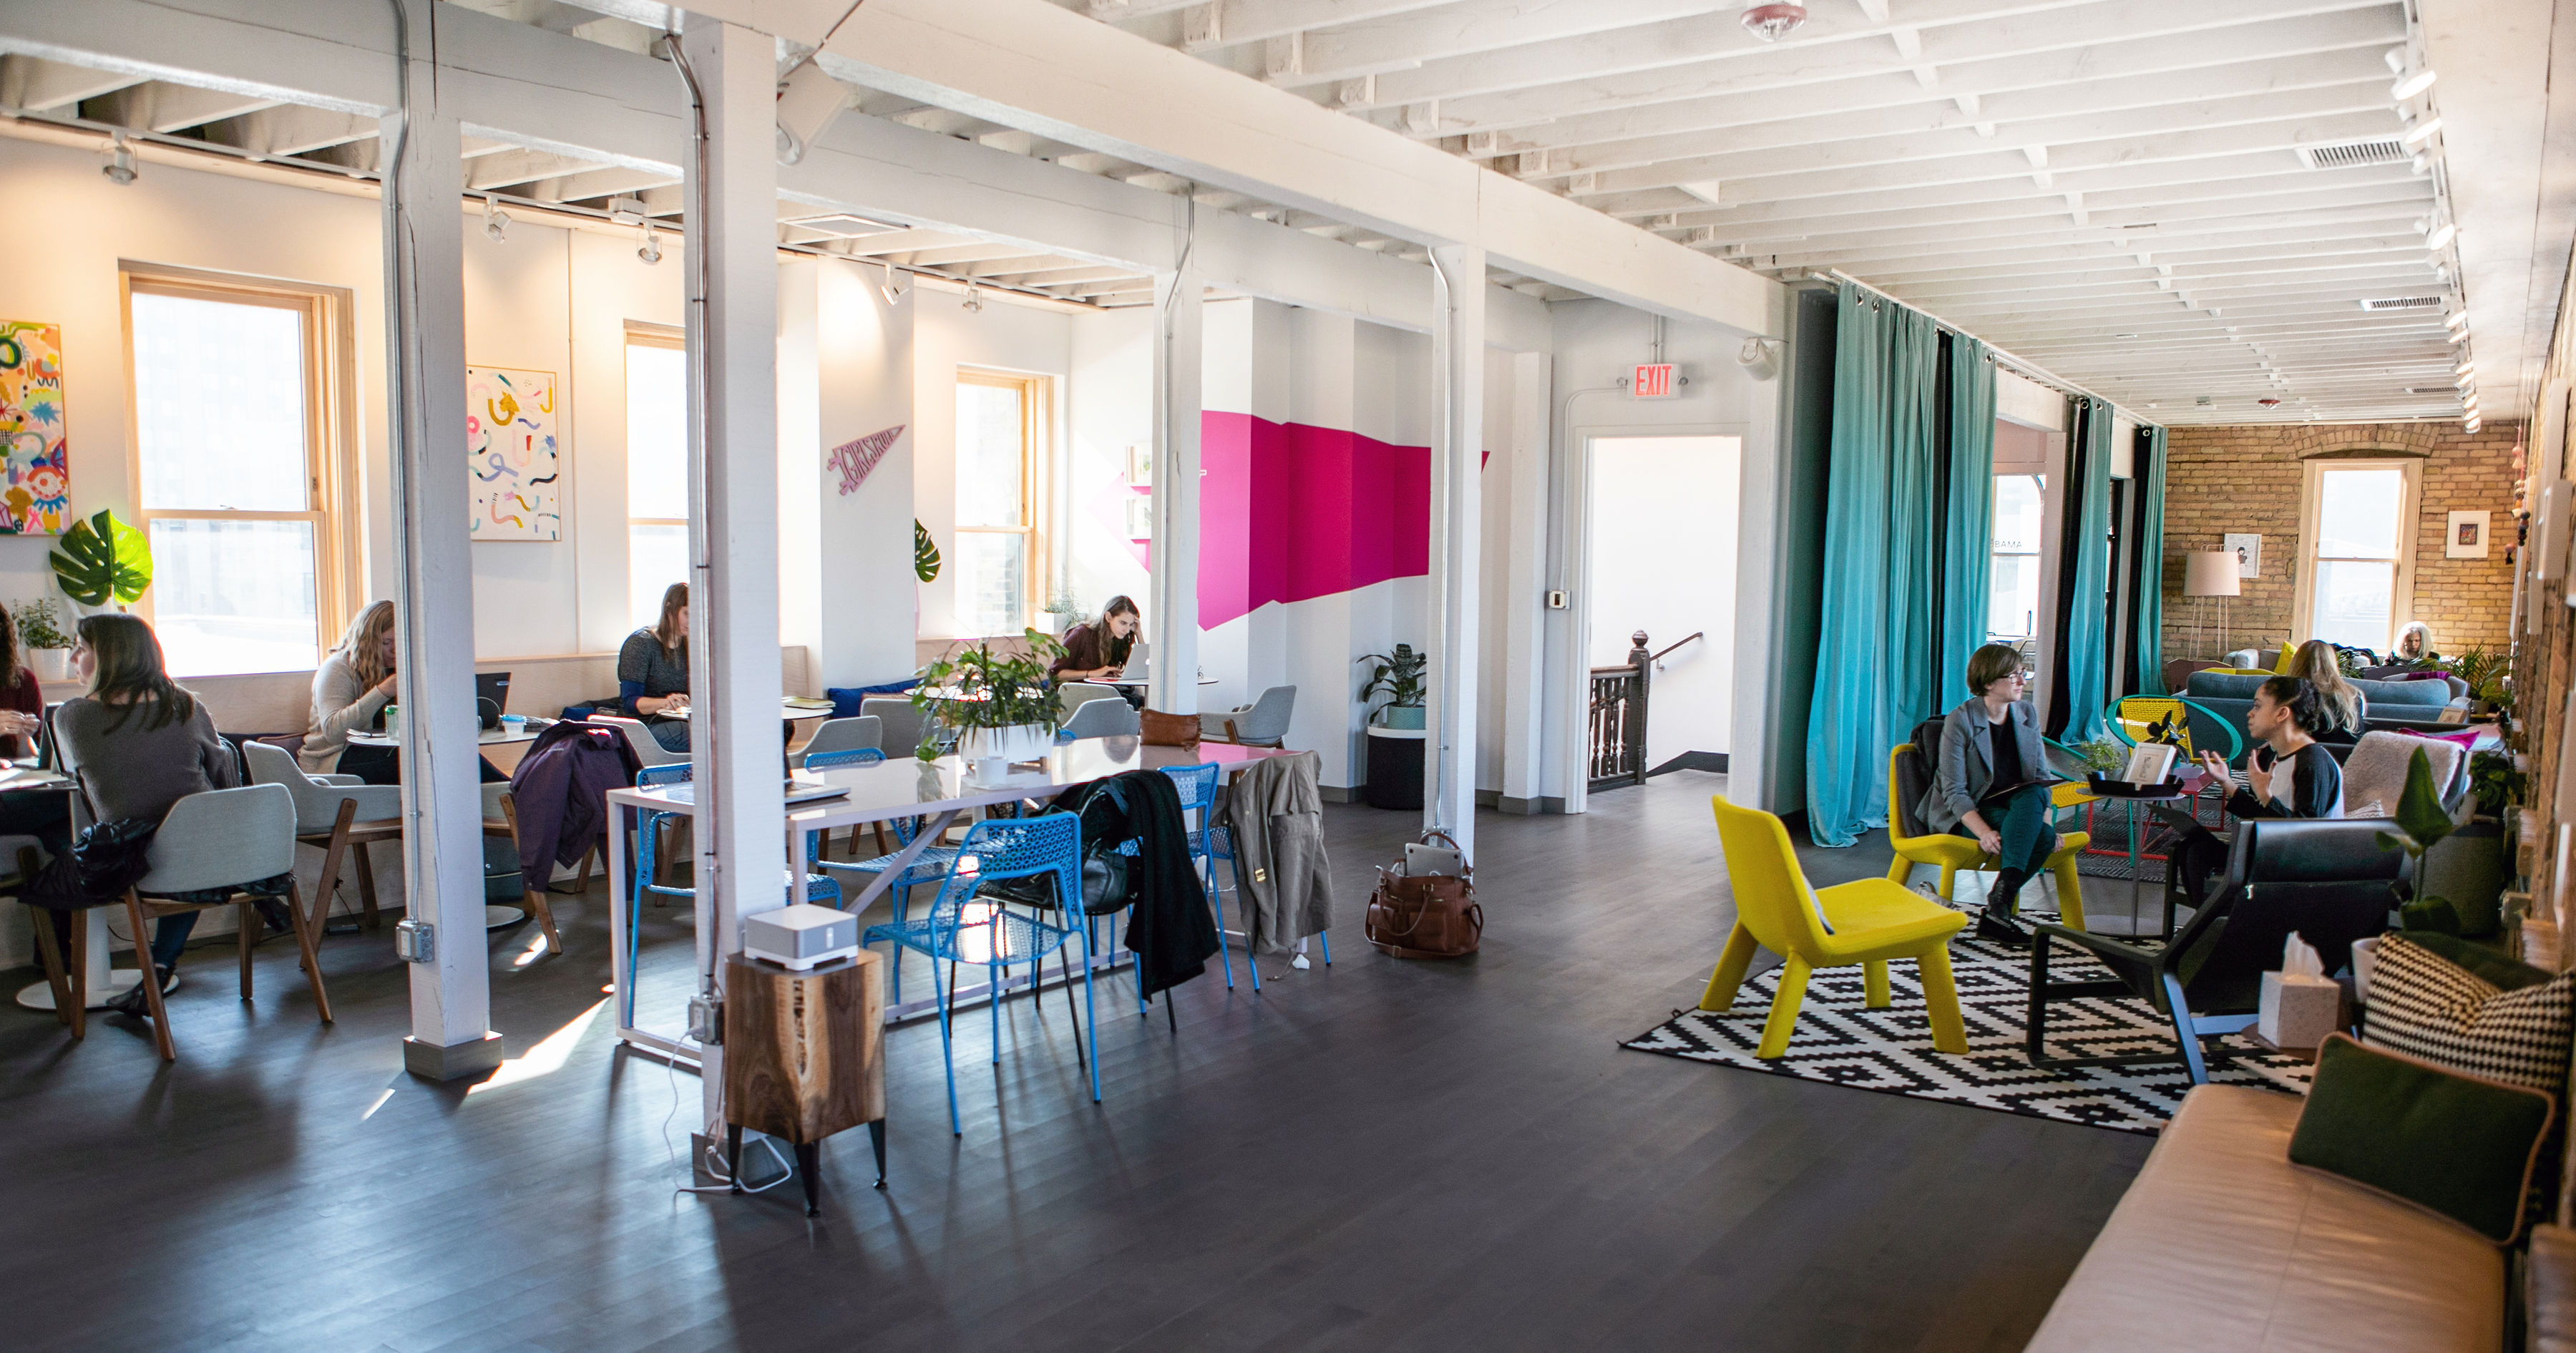 Can coworking companies sell inclusive communities?